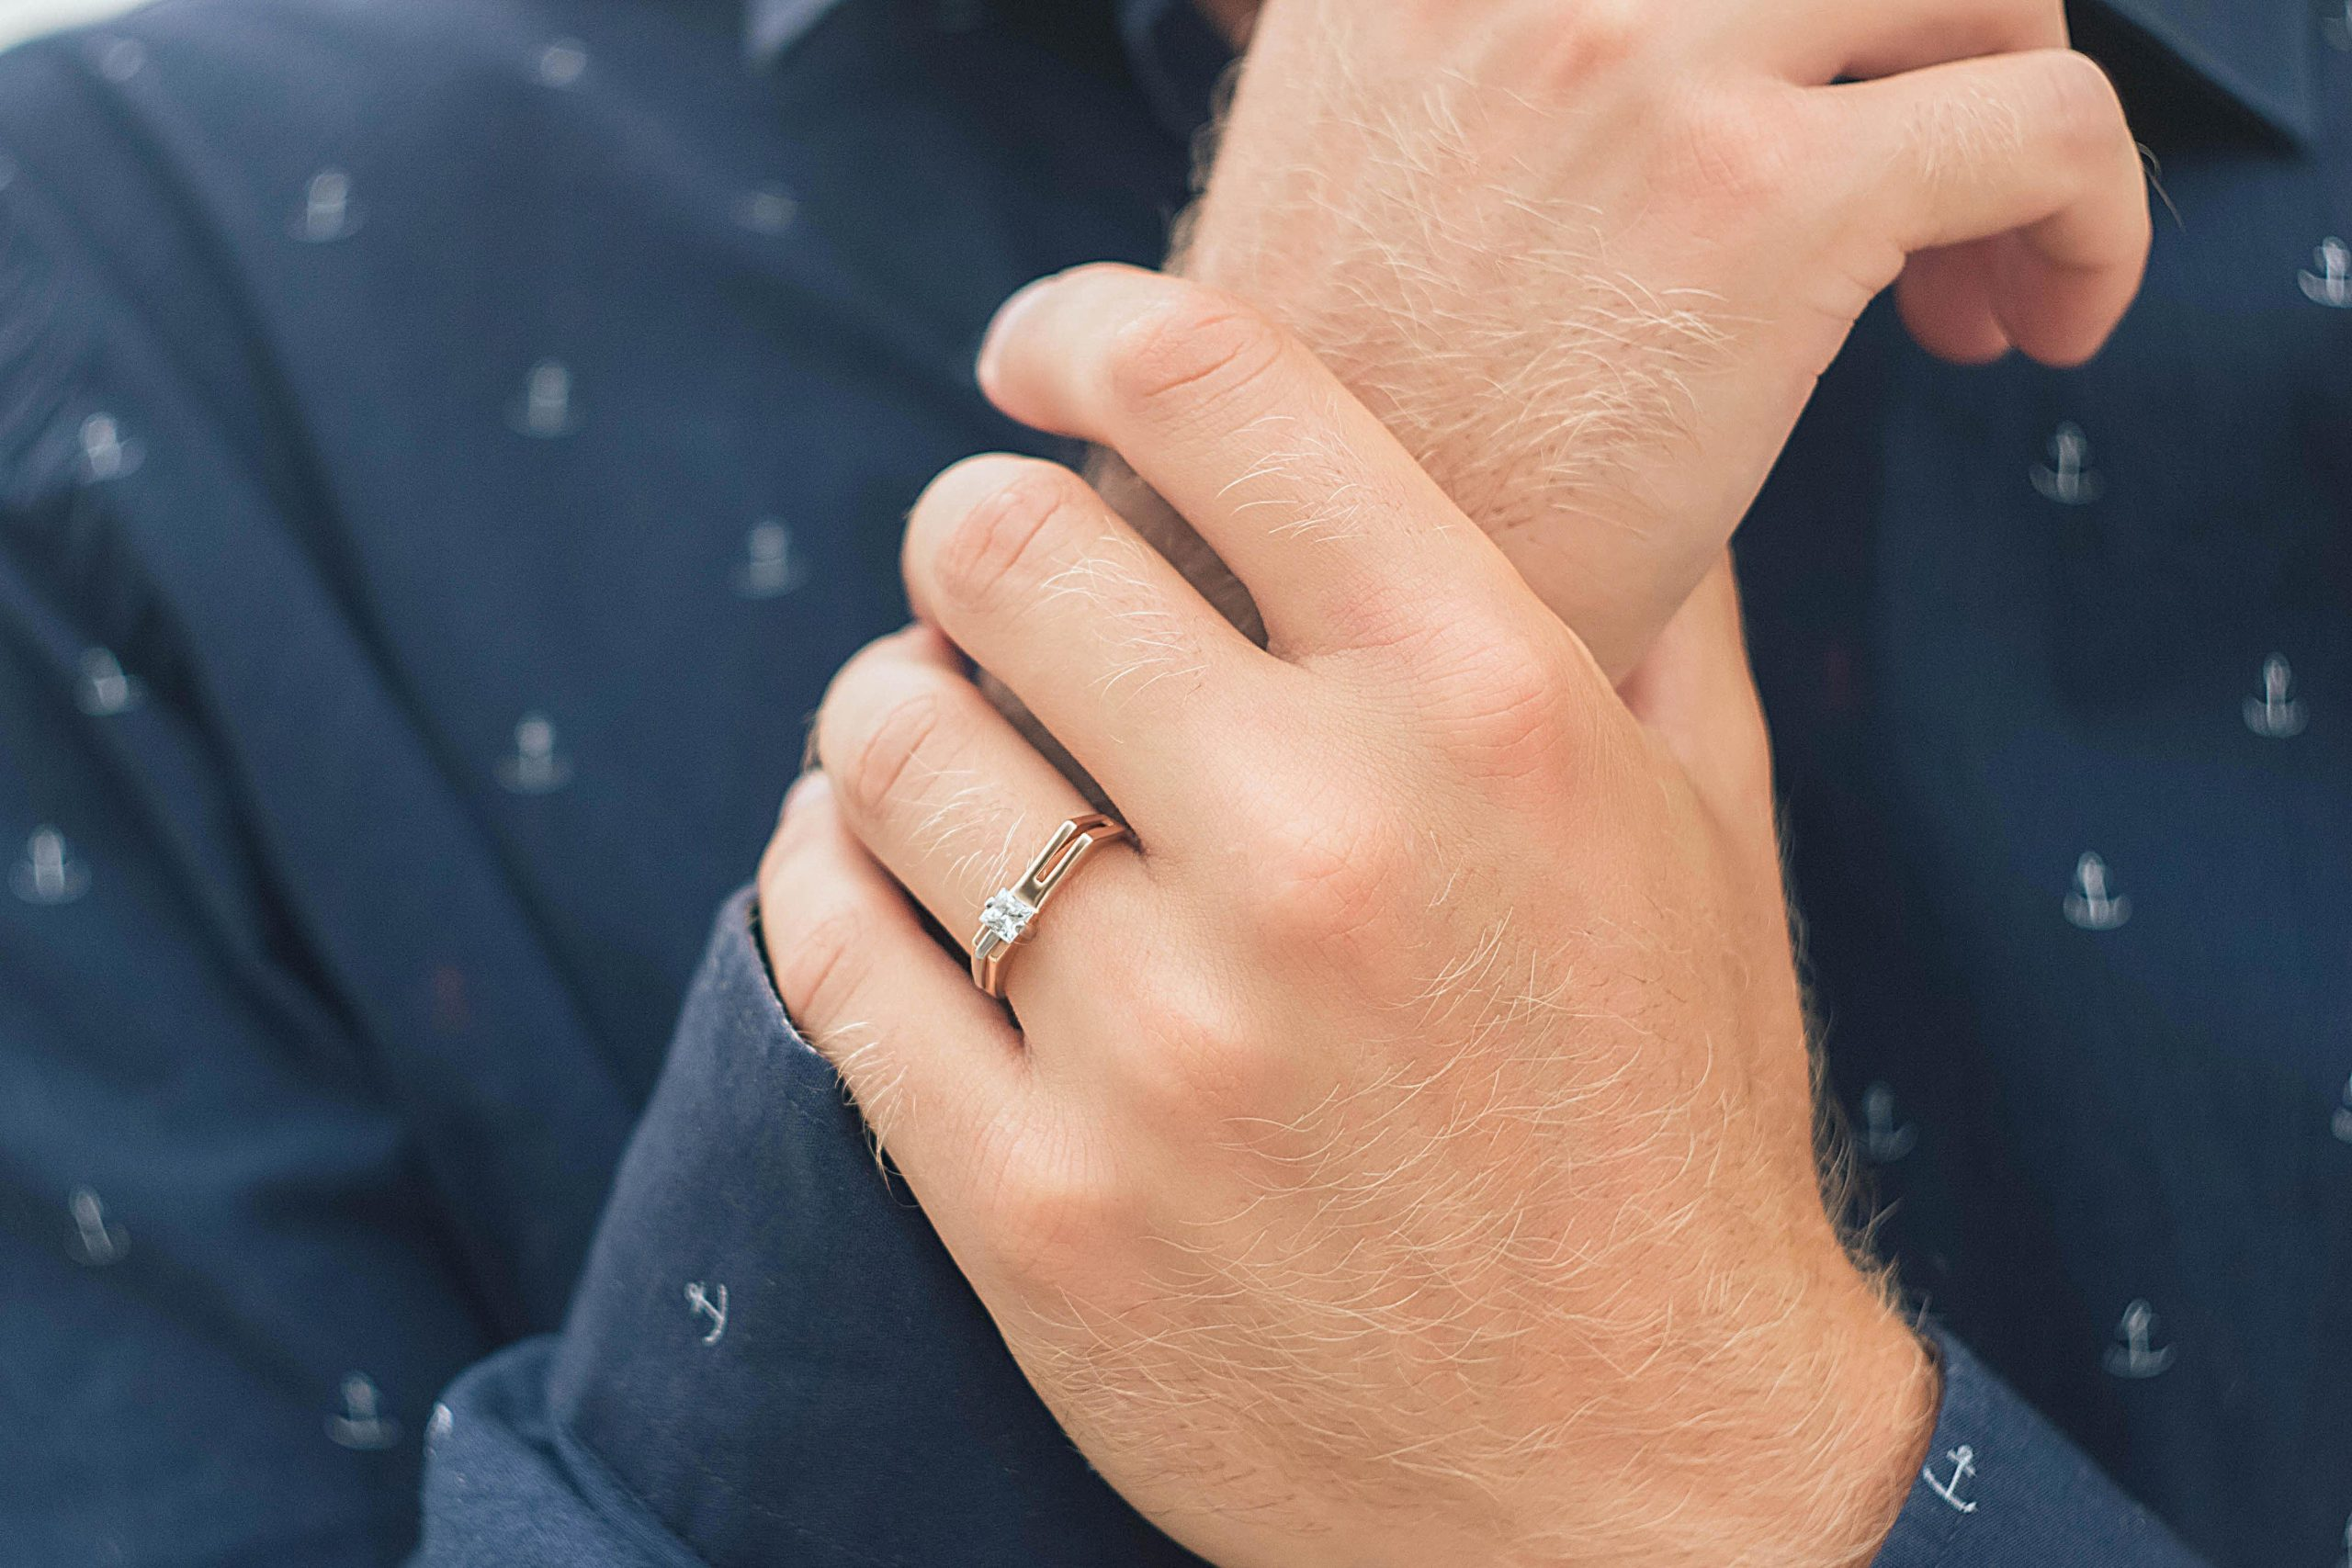 men's ring on the hand of a man, men's jewelry, gold ring, men's accessories